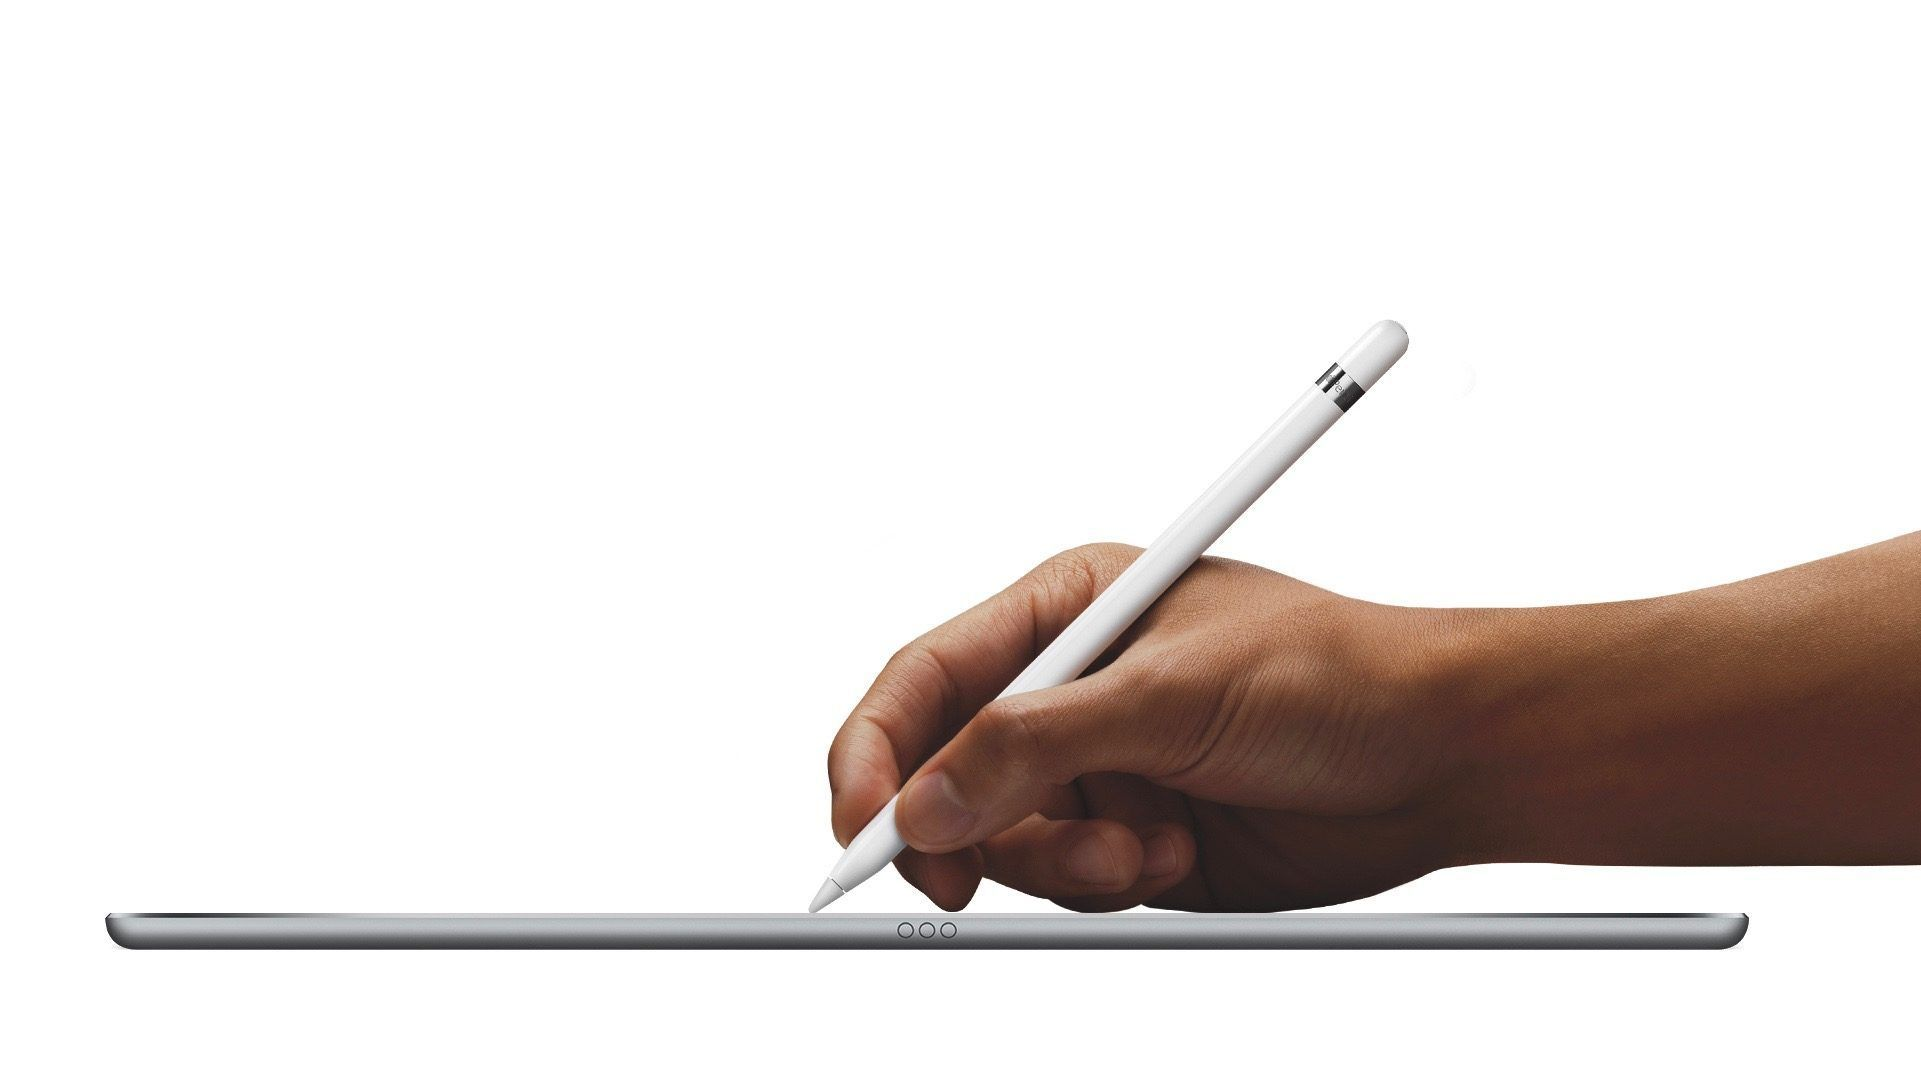 The Best Ios Apps For Taking Notes With Apple Pencil Ipad Pro 9to5mac Ipadpro